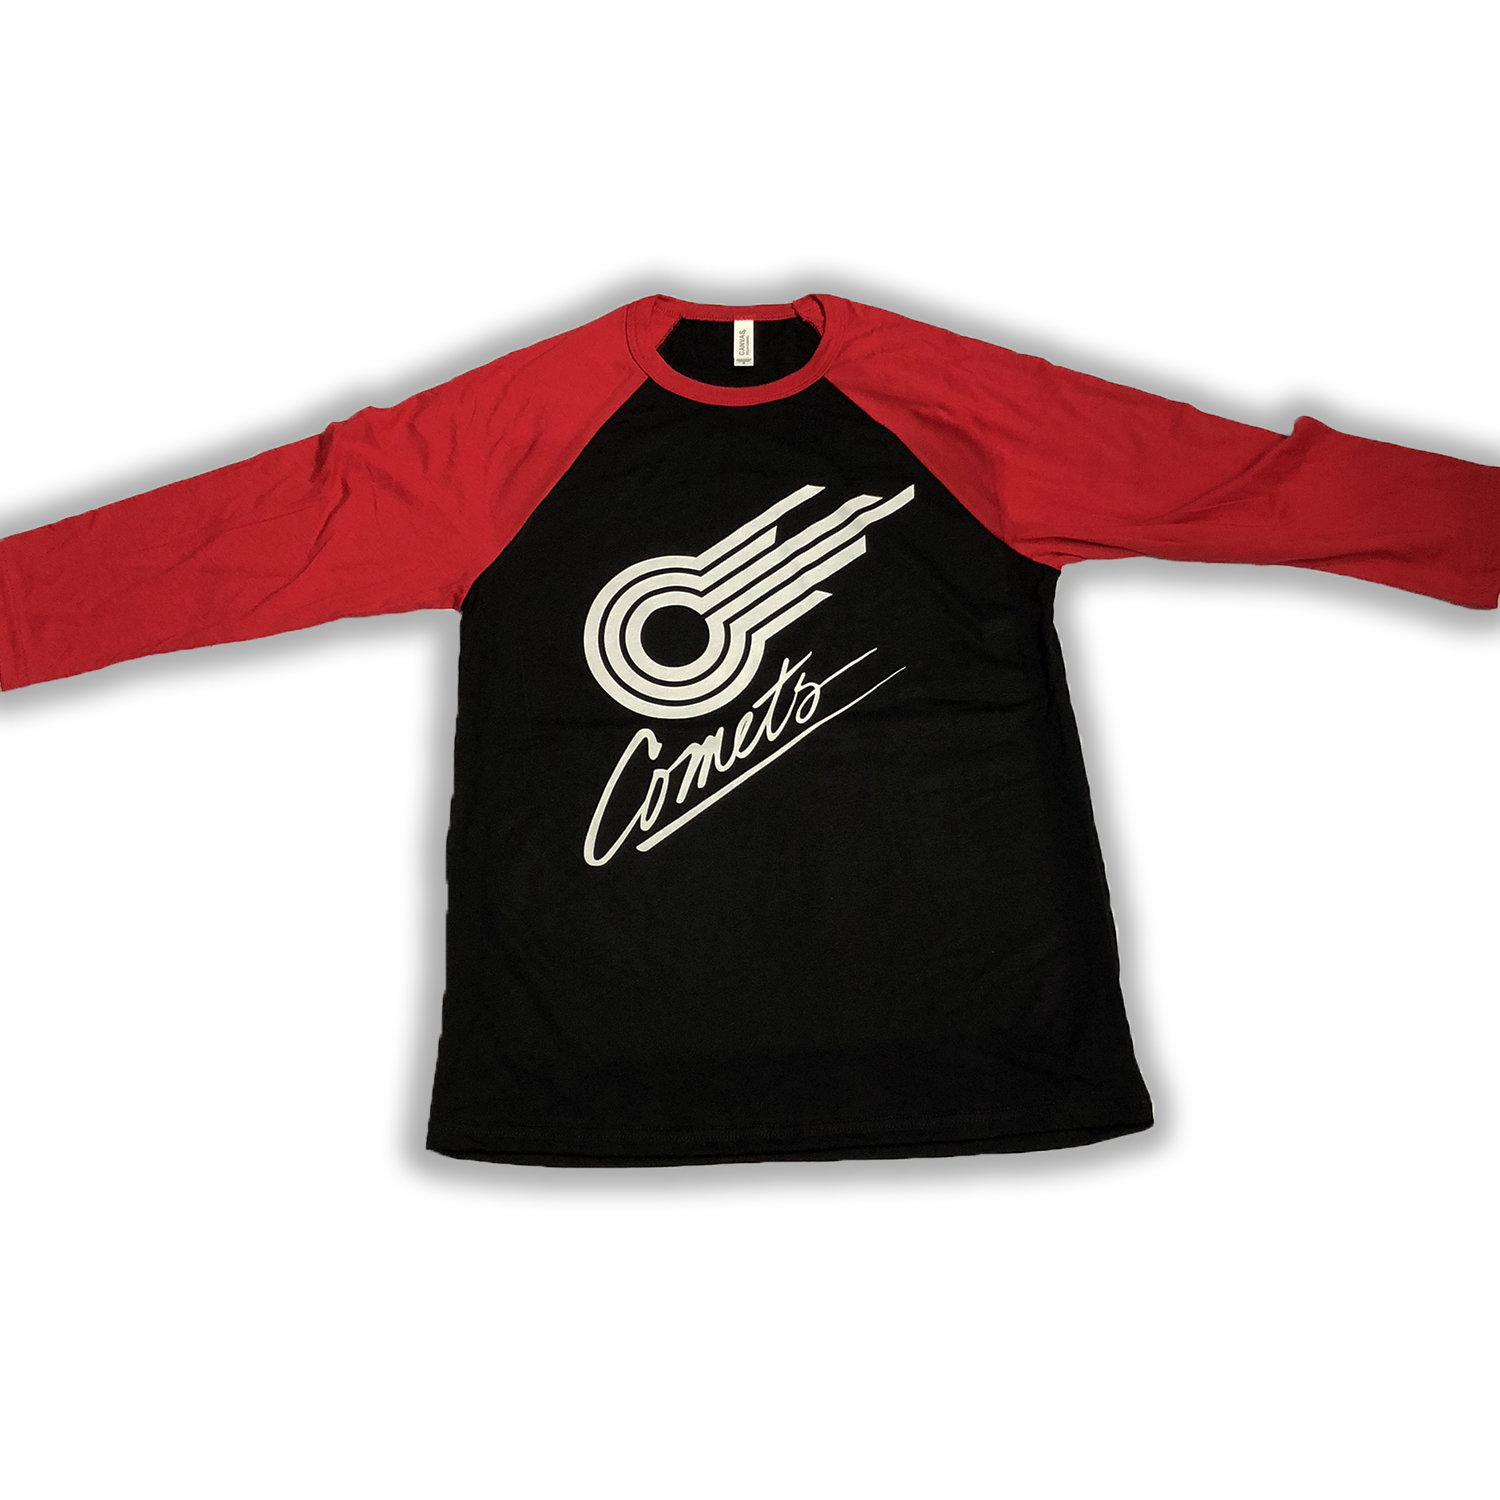 3/4 Sleeve Red/Black